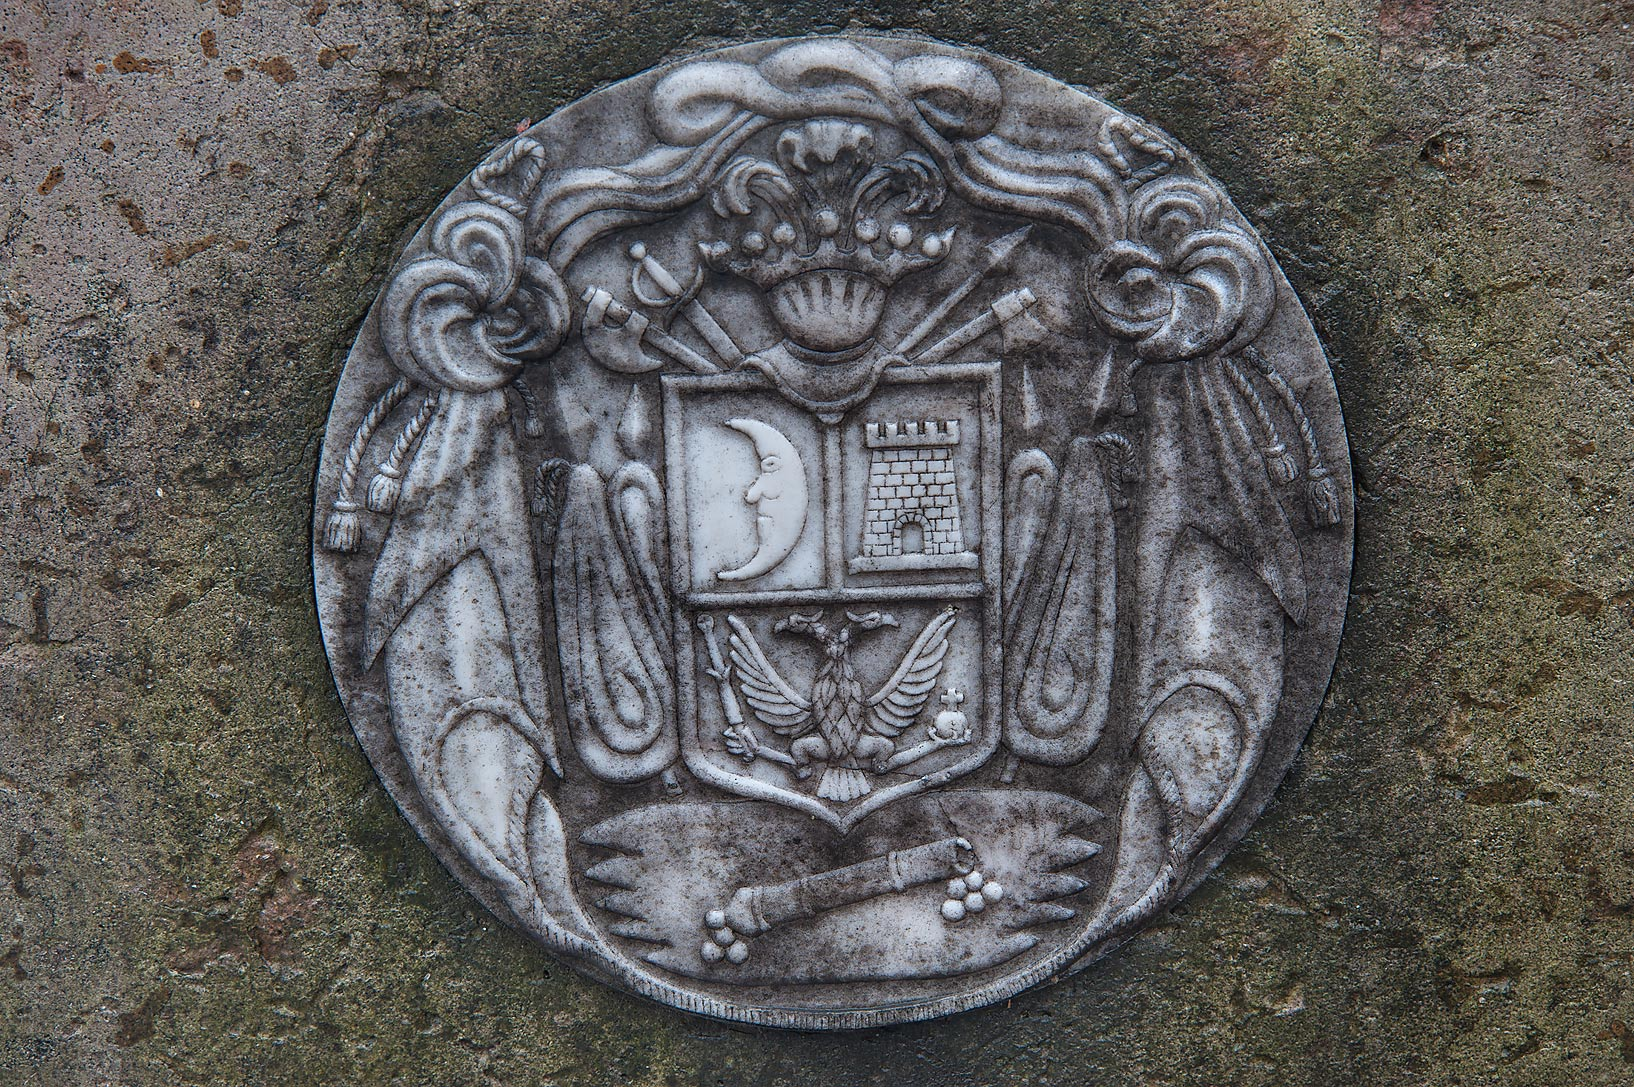 Coat of arms in Necropolis of Alexander Nevsky...Cemetery). St.Petersburg, Russia